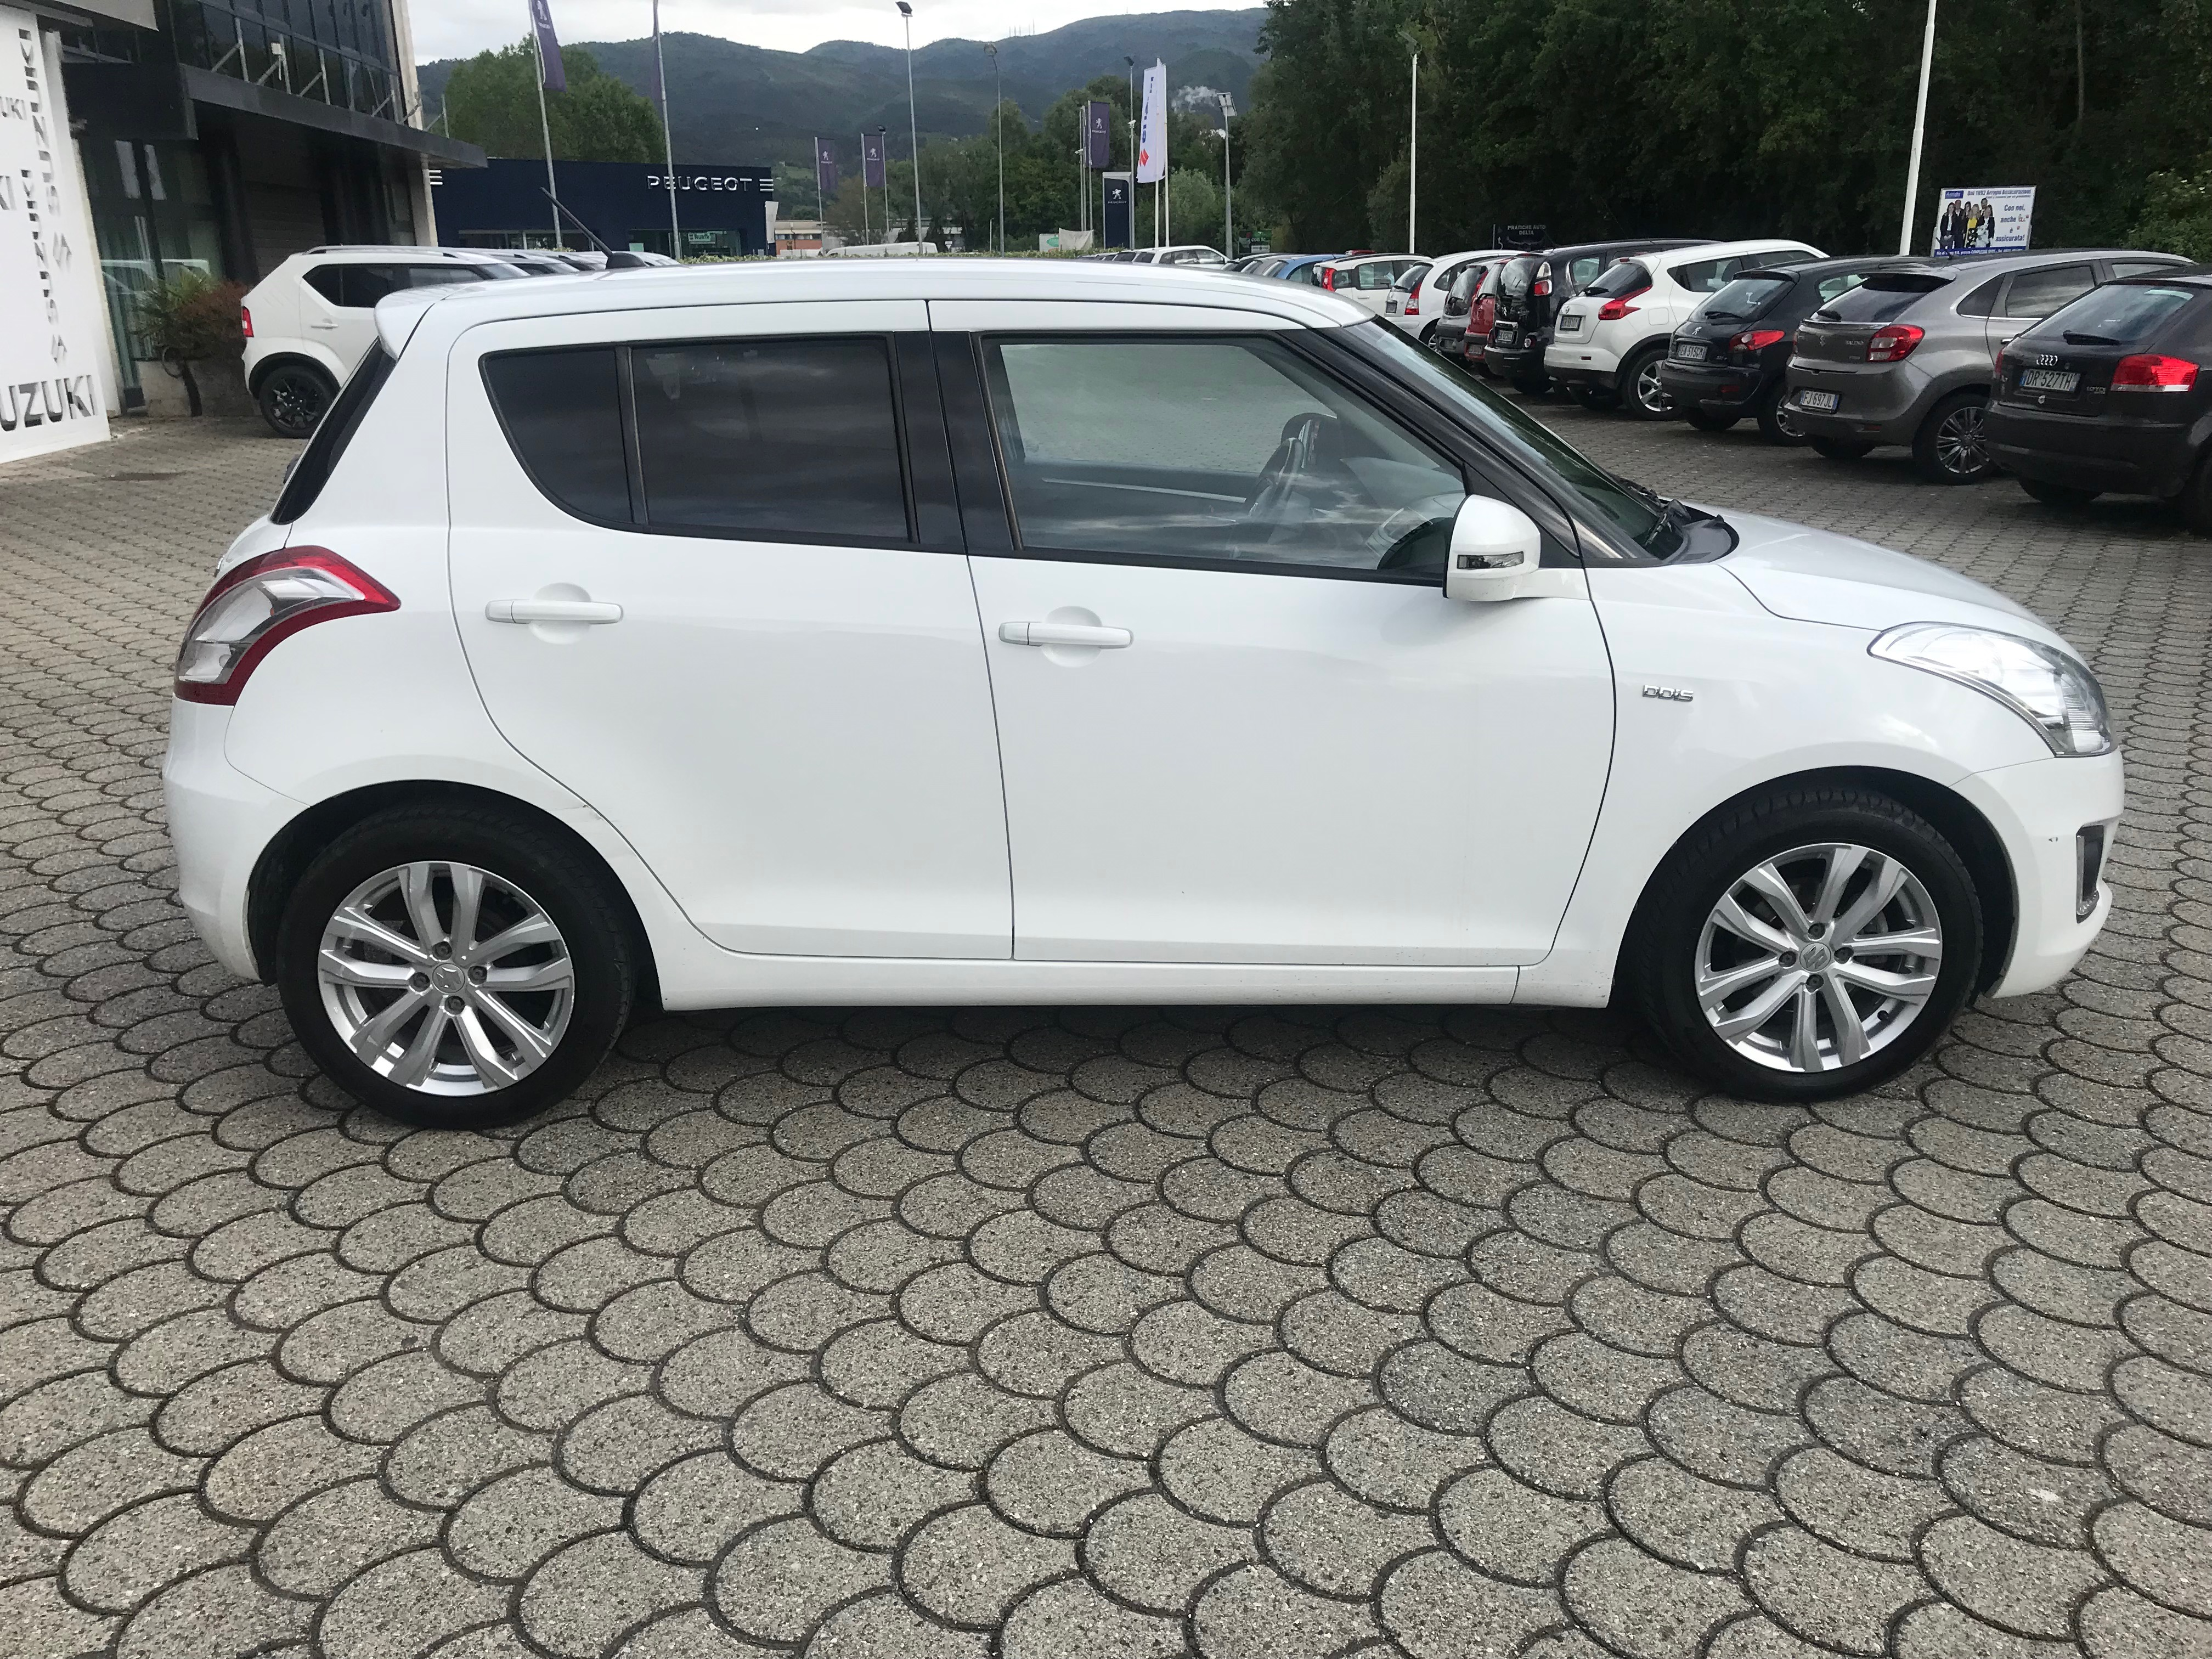 Suzuki Swift Top 1.3 multijet Navi